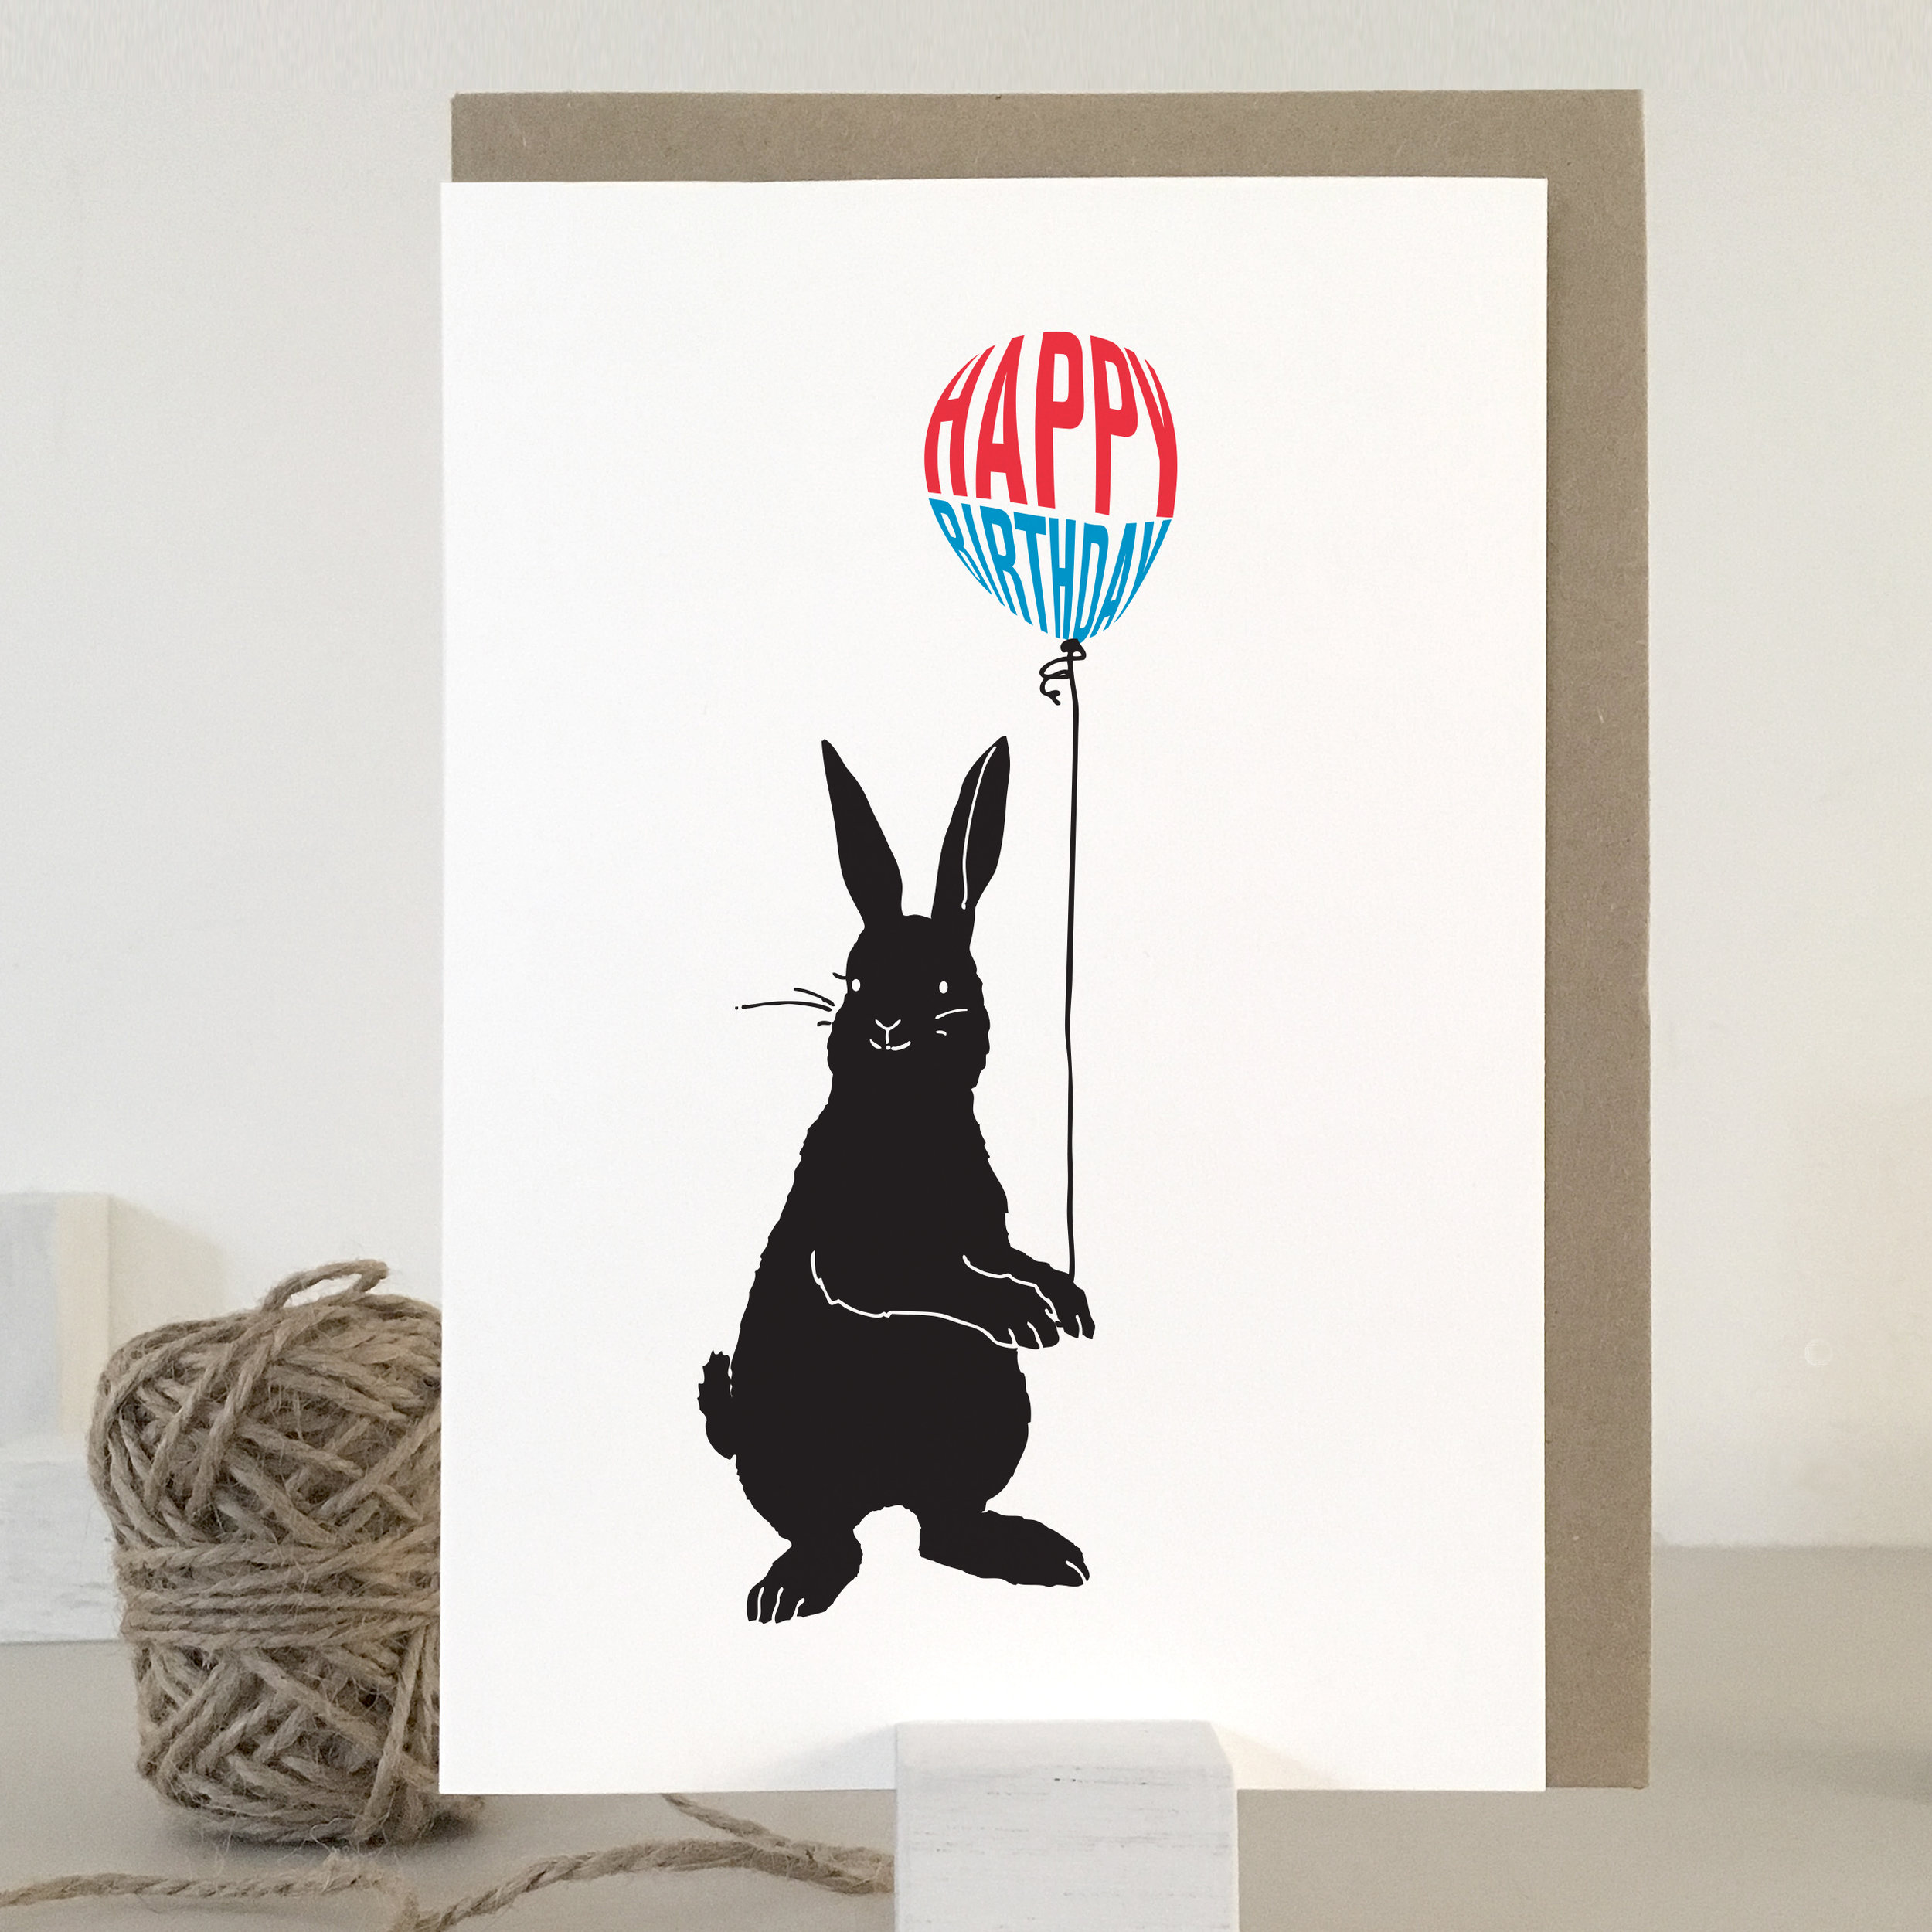 Rabbit card: